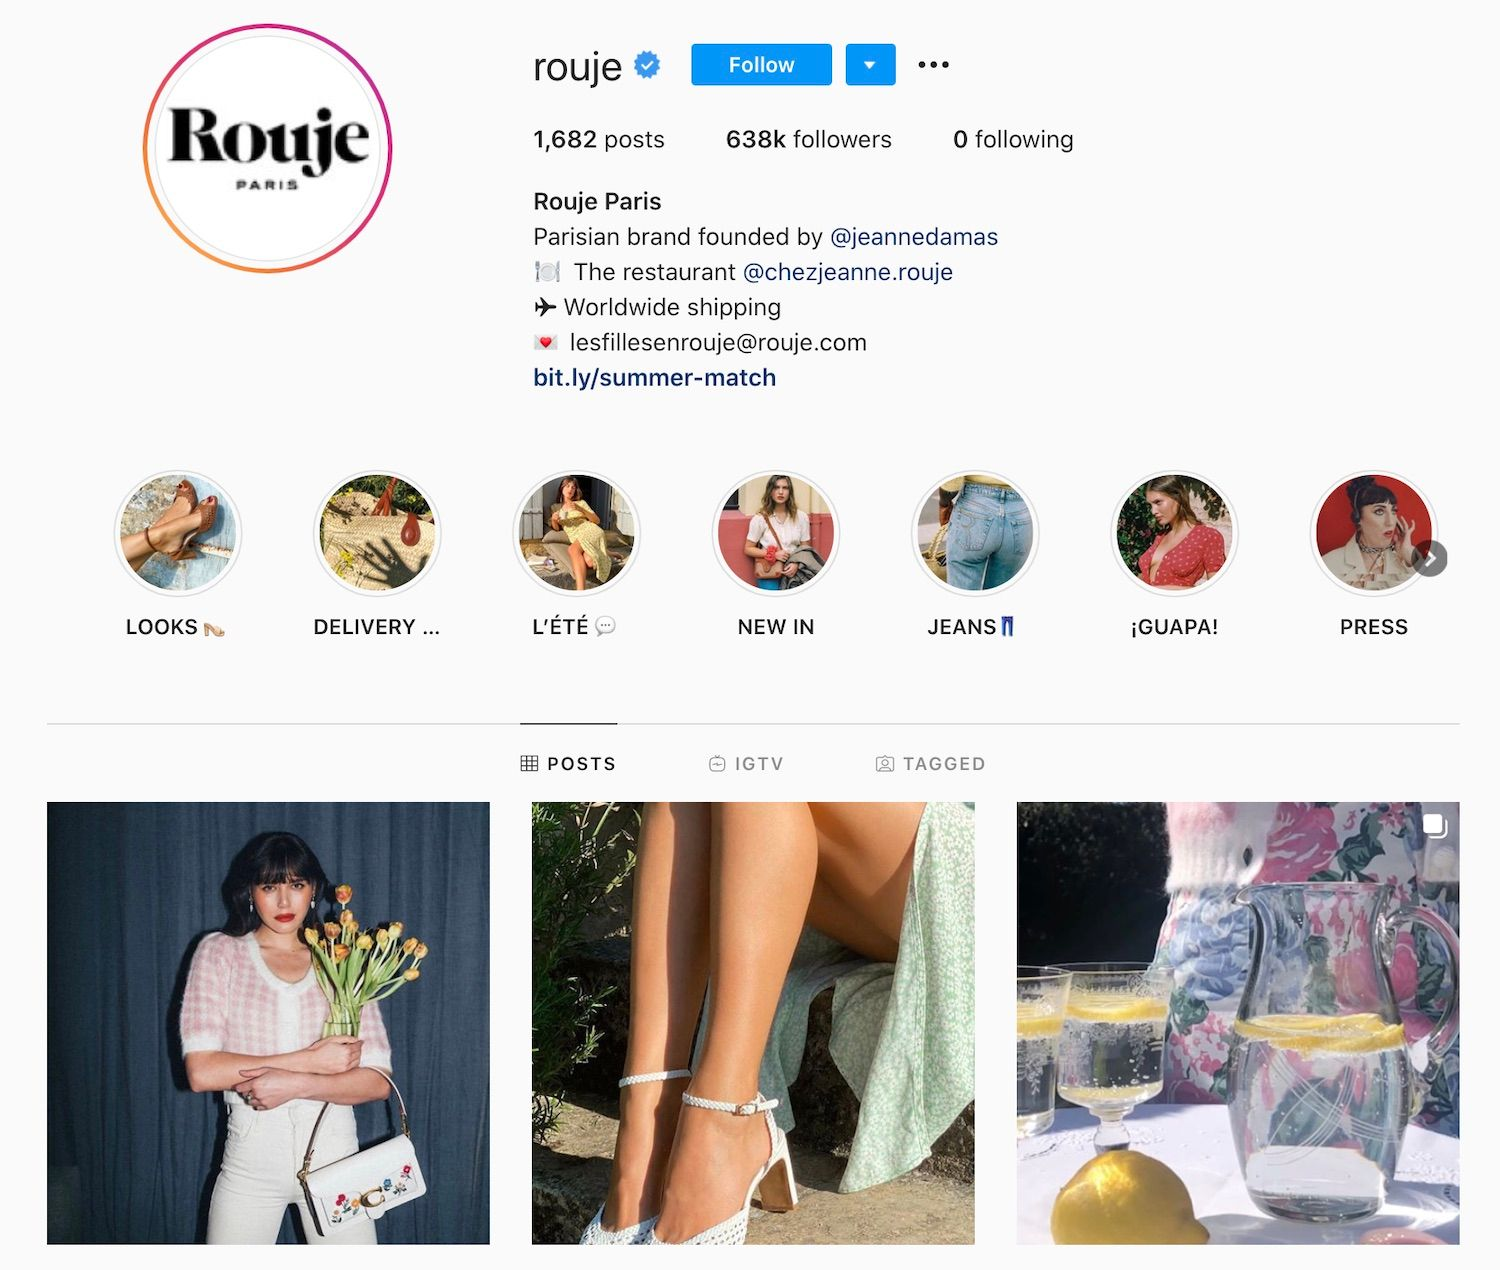 The Official Instagram Account of Rouje Paris